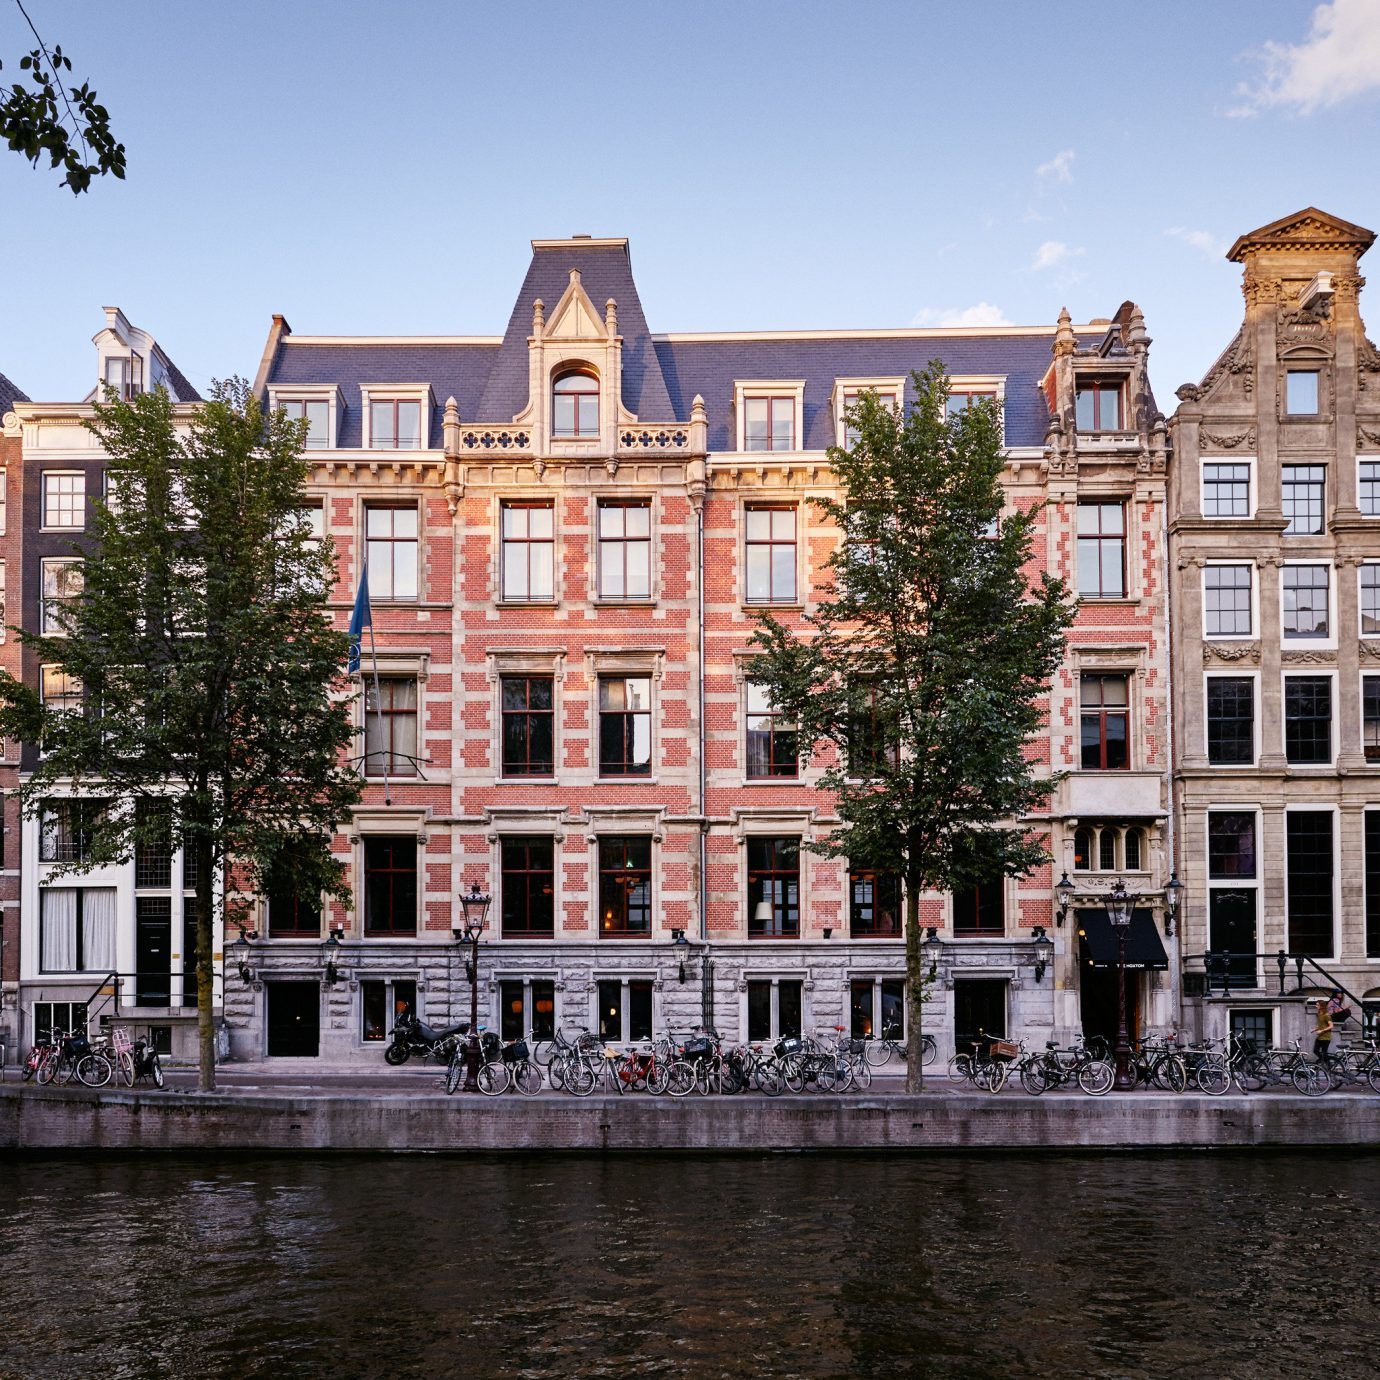 Amsterdam Boutique Hotels Hotels The Netherlands building sky water outdoor Canal landmark City waterway Town urban area neighbourhood human settlement Architecture house River cityscape Downtown estate facade town square surrounded several